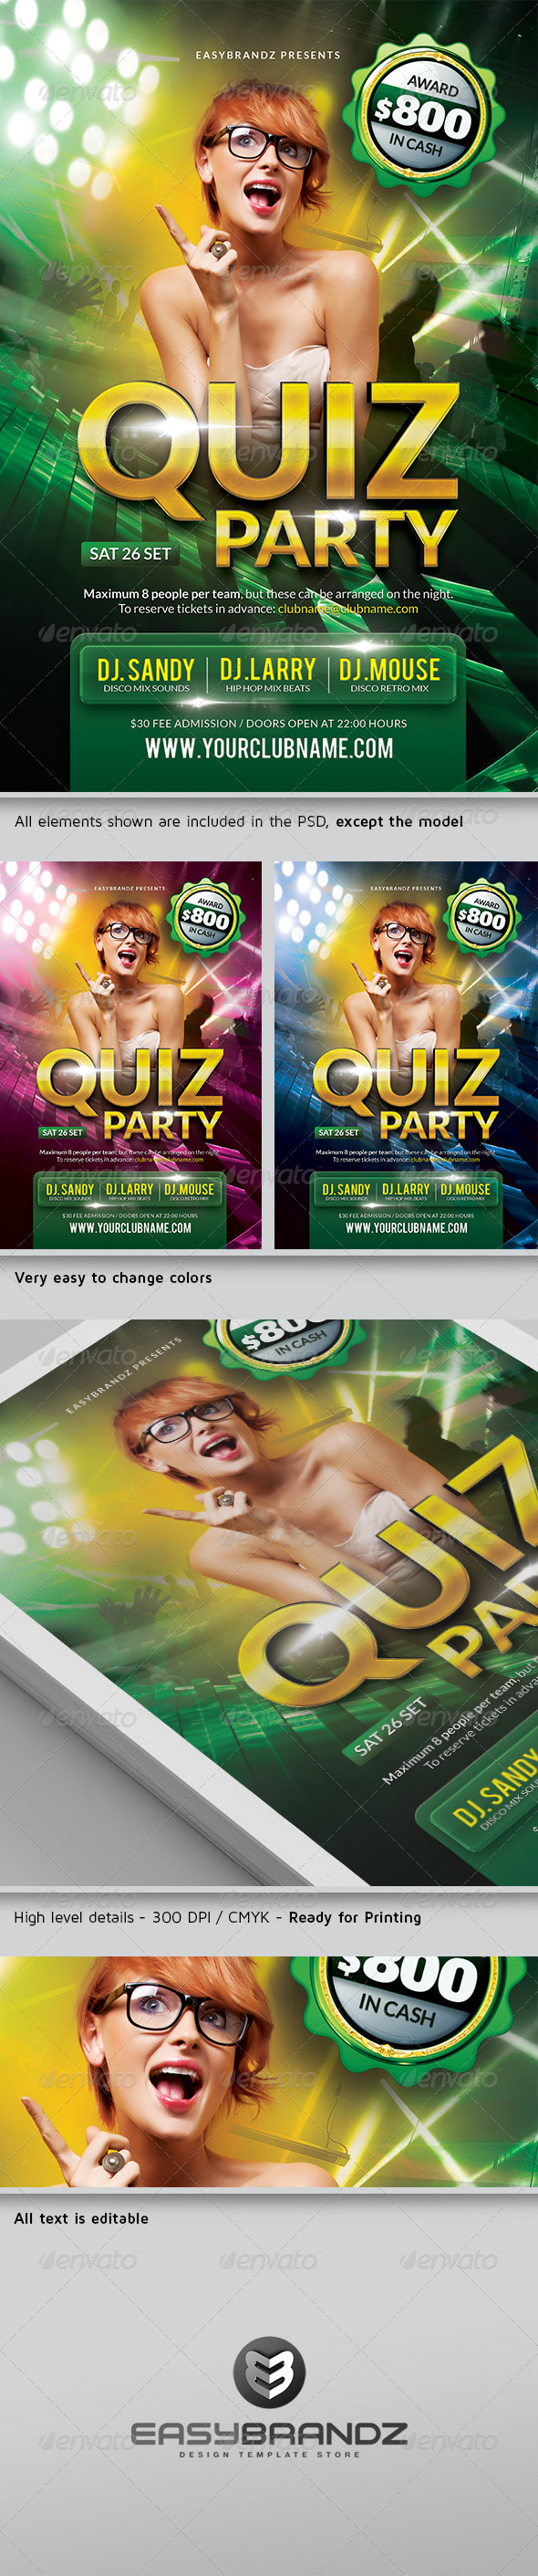 Quiz Party Flyer Template  - Clubs & Parties Events